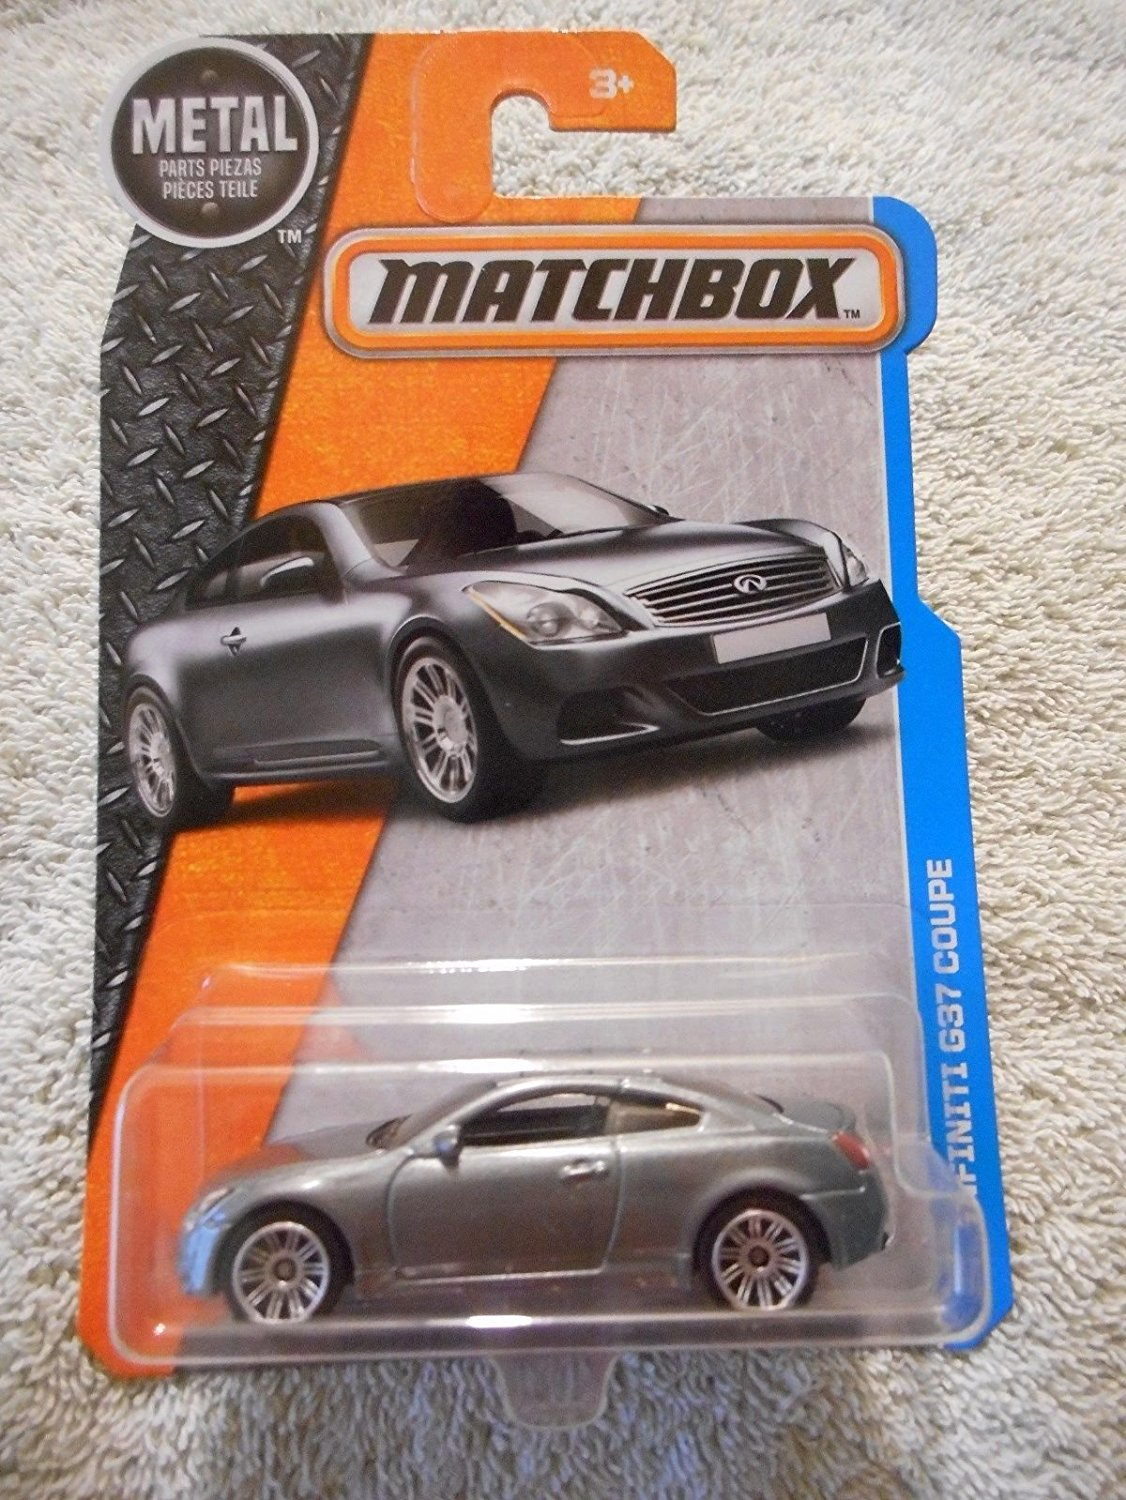 , 2016 MBX Adventure City, Infiniti G37 Coupe [Silver] #32 125 By Matchbox by